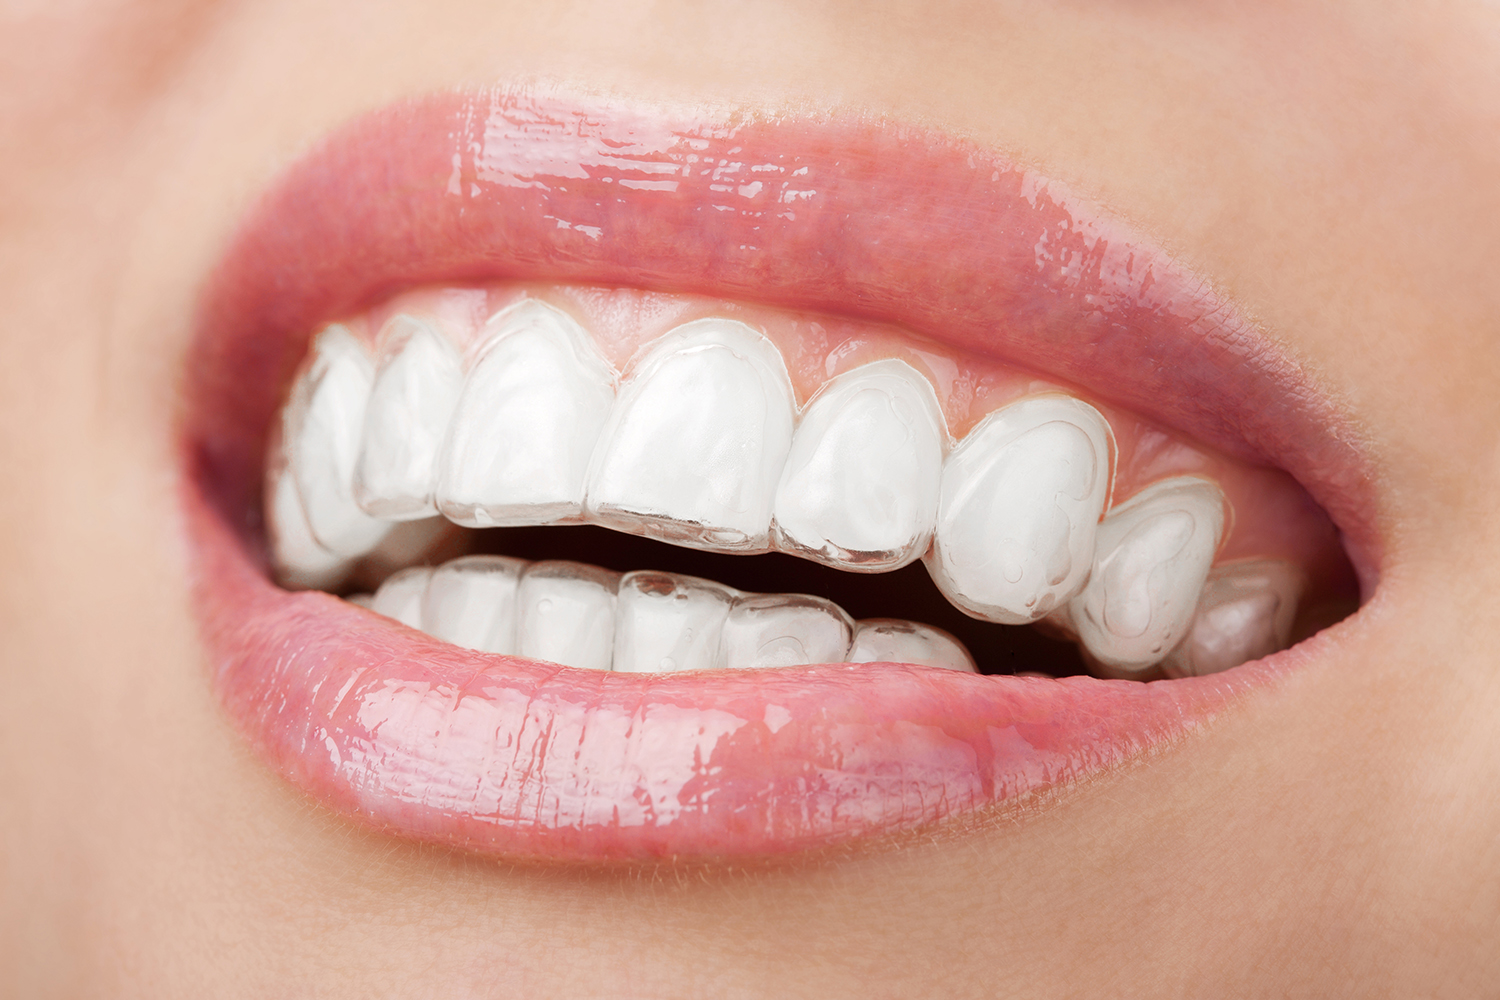 invisalign treatment options - closeup image